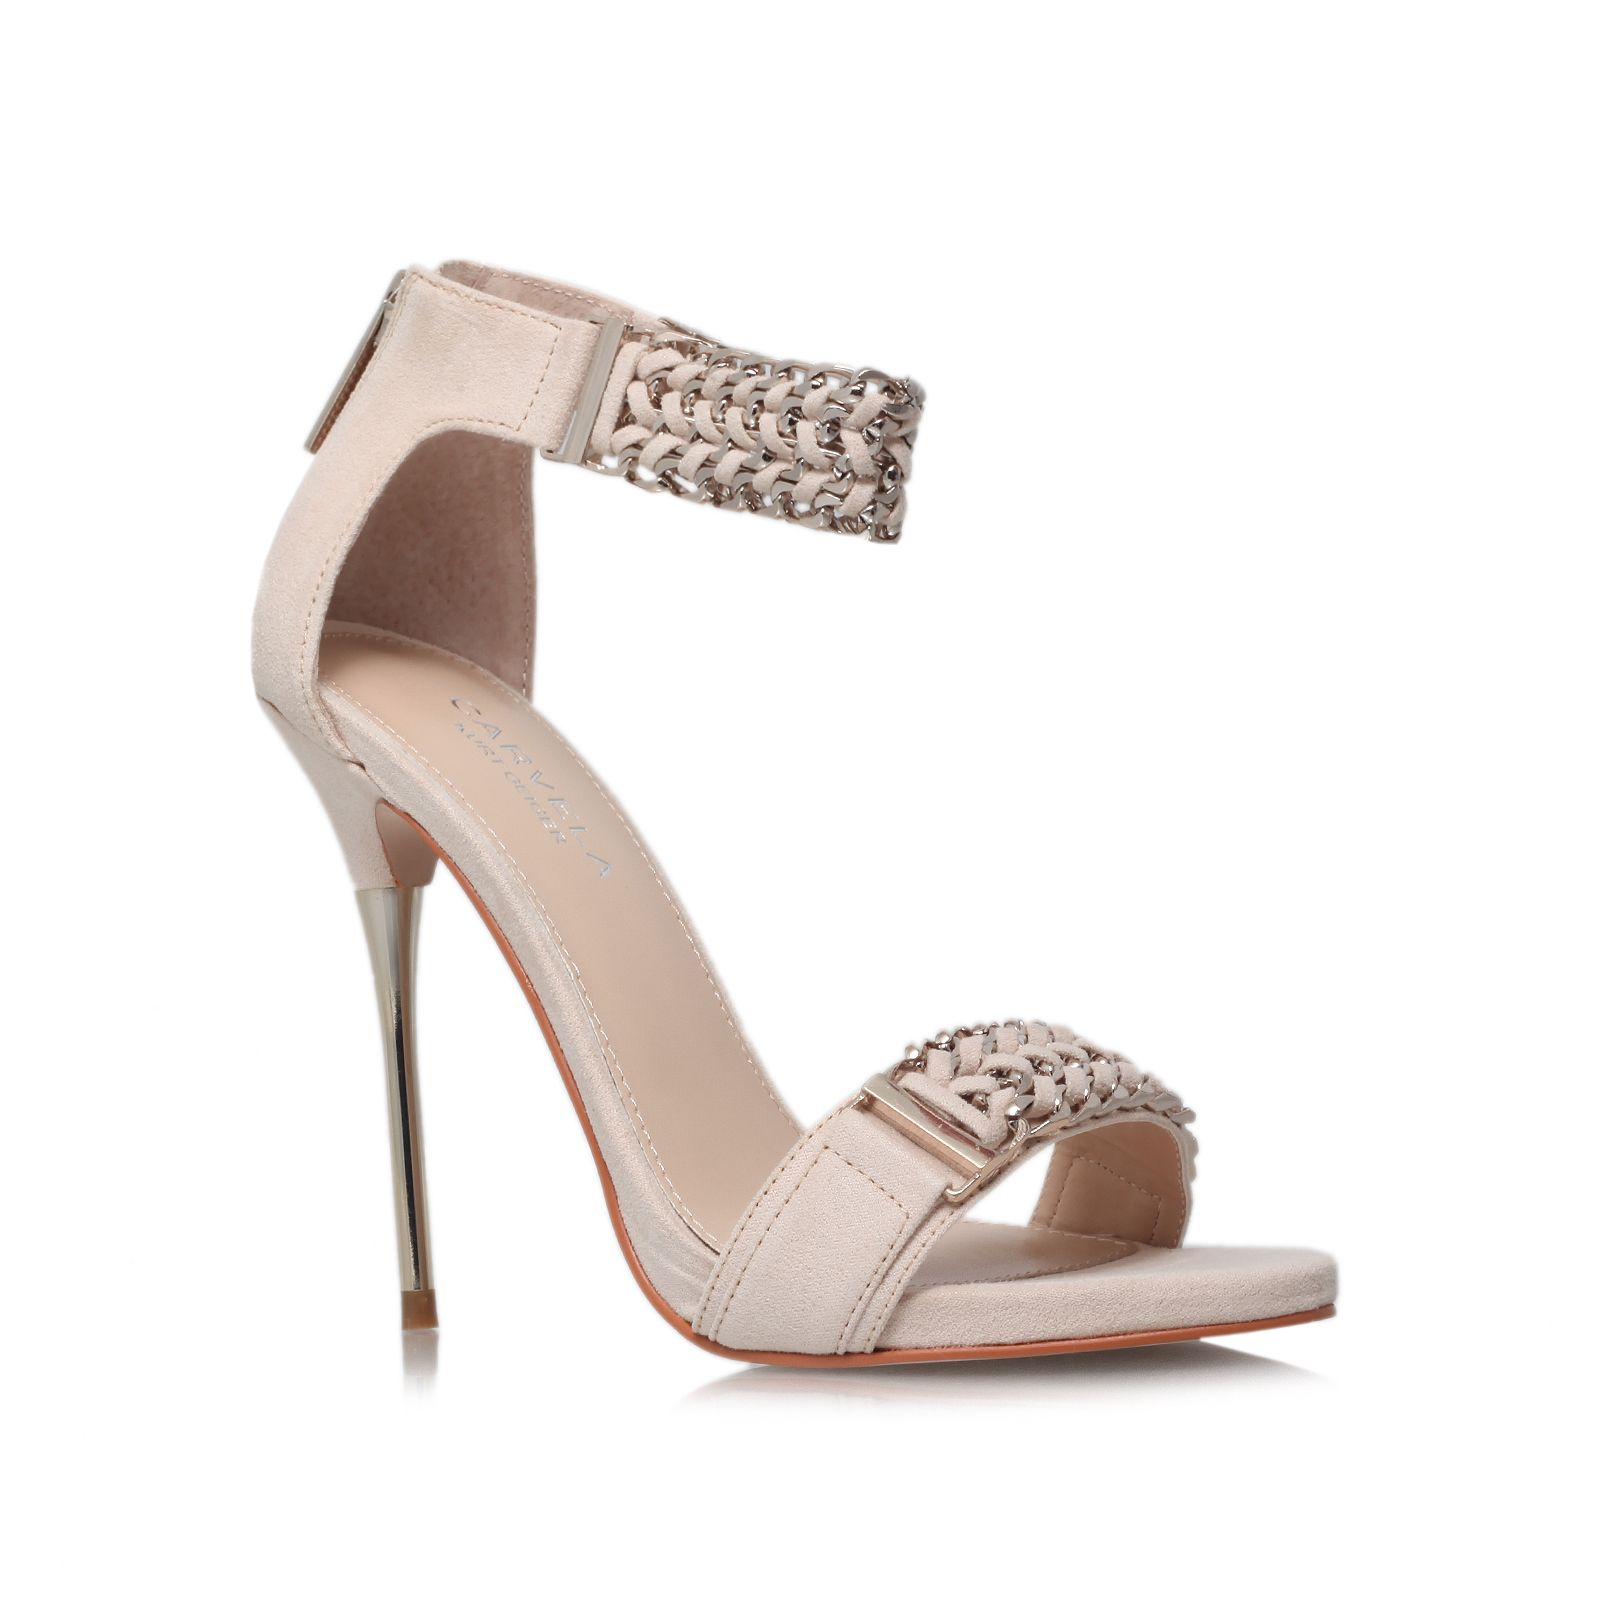 Garland high heel occasion shoes